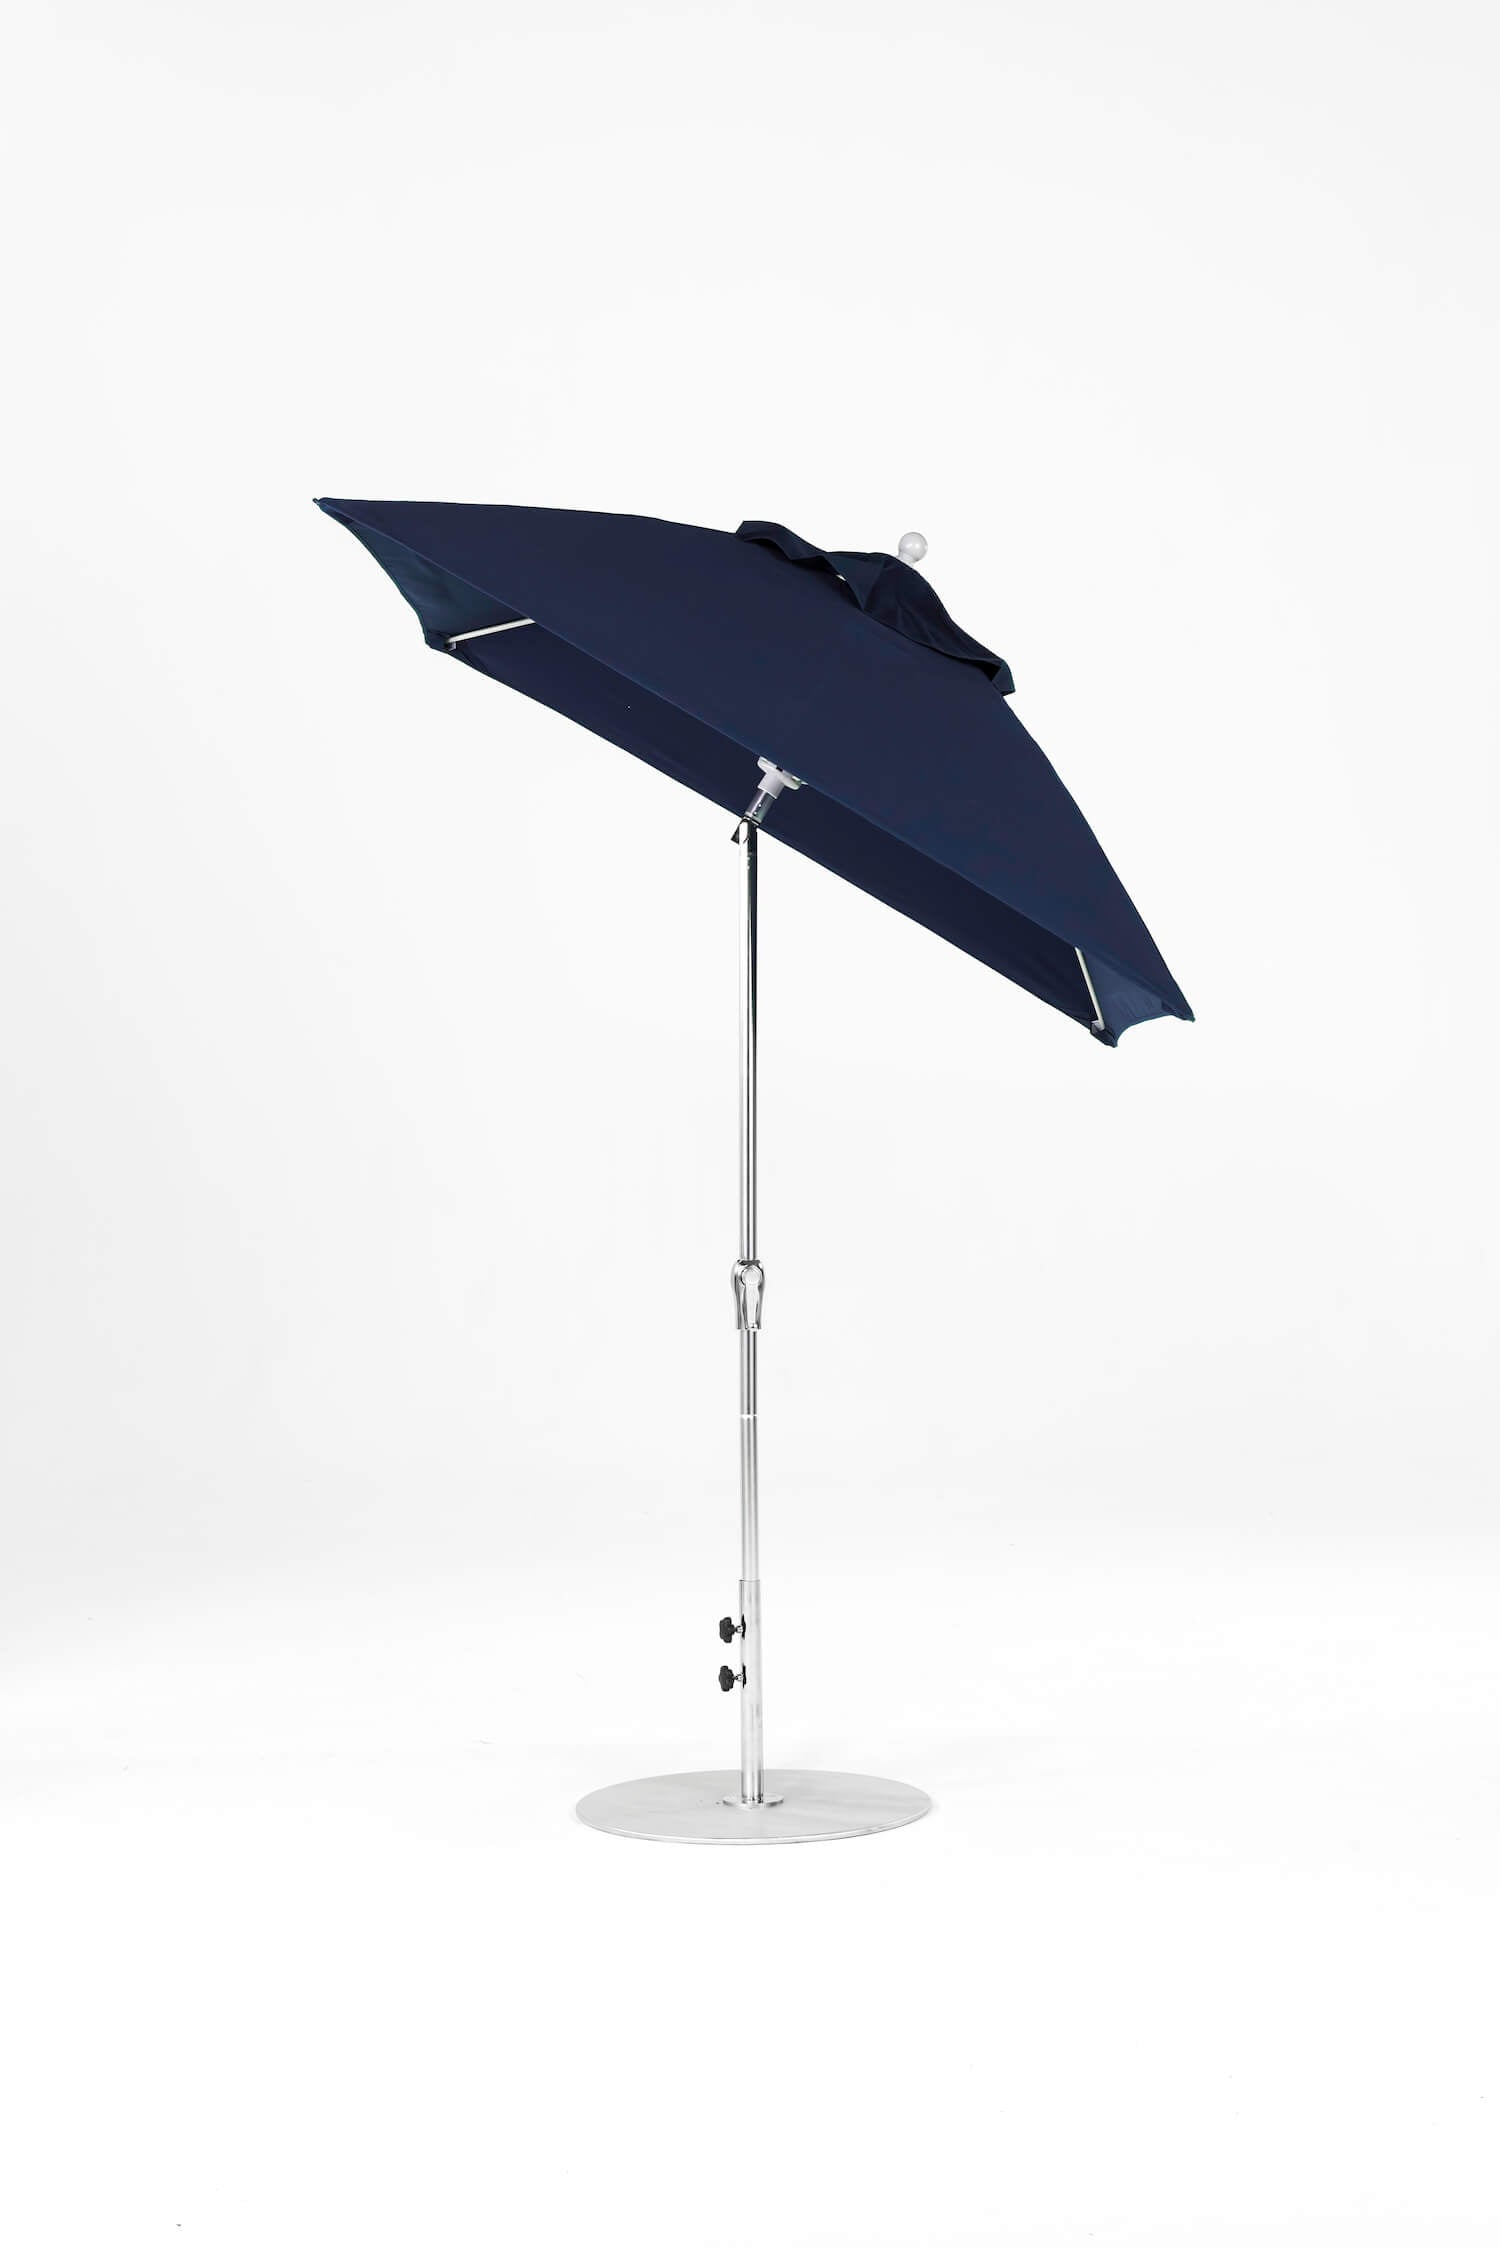 Monterey Crank Lift Auto-Tilt Umbrella | Square | Polished Silver Frame